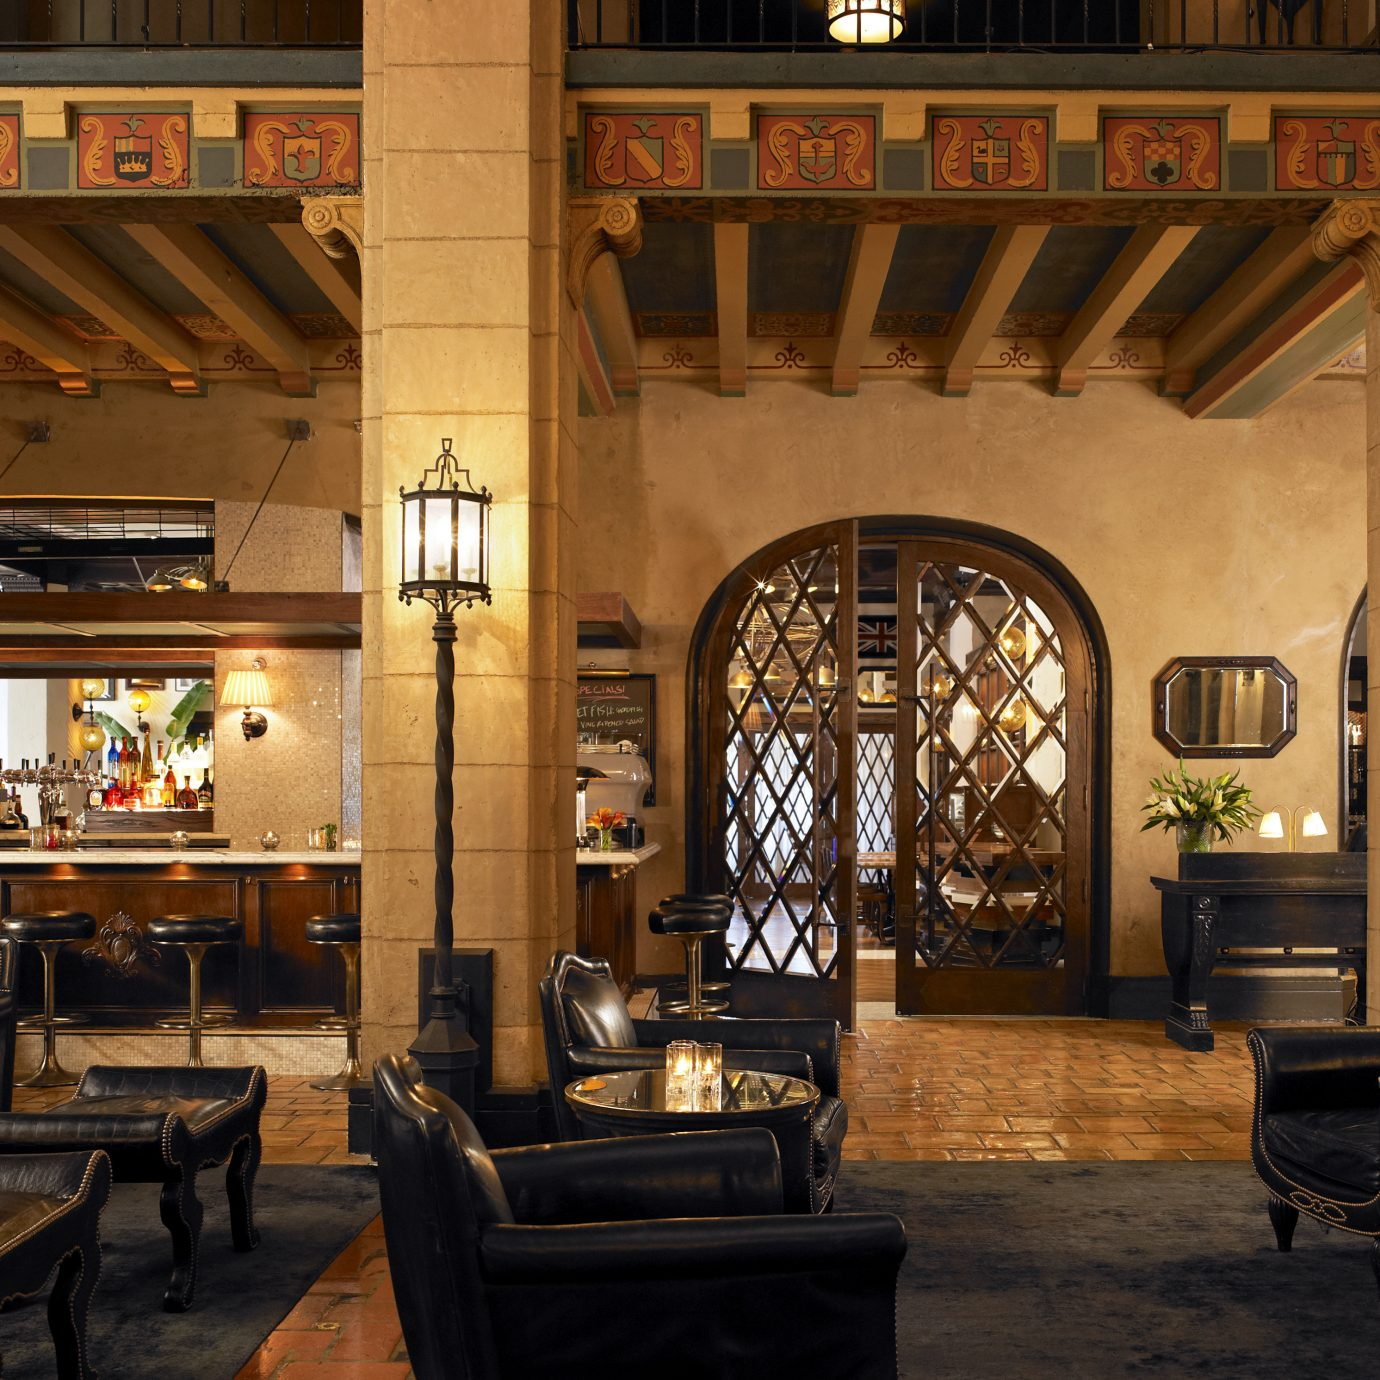 Architecture Bar Dining Drink Eat Historic Hotels Lobby Lounge Luxury Romance chair restaurant lighting